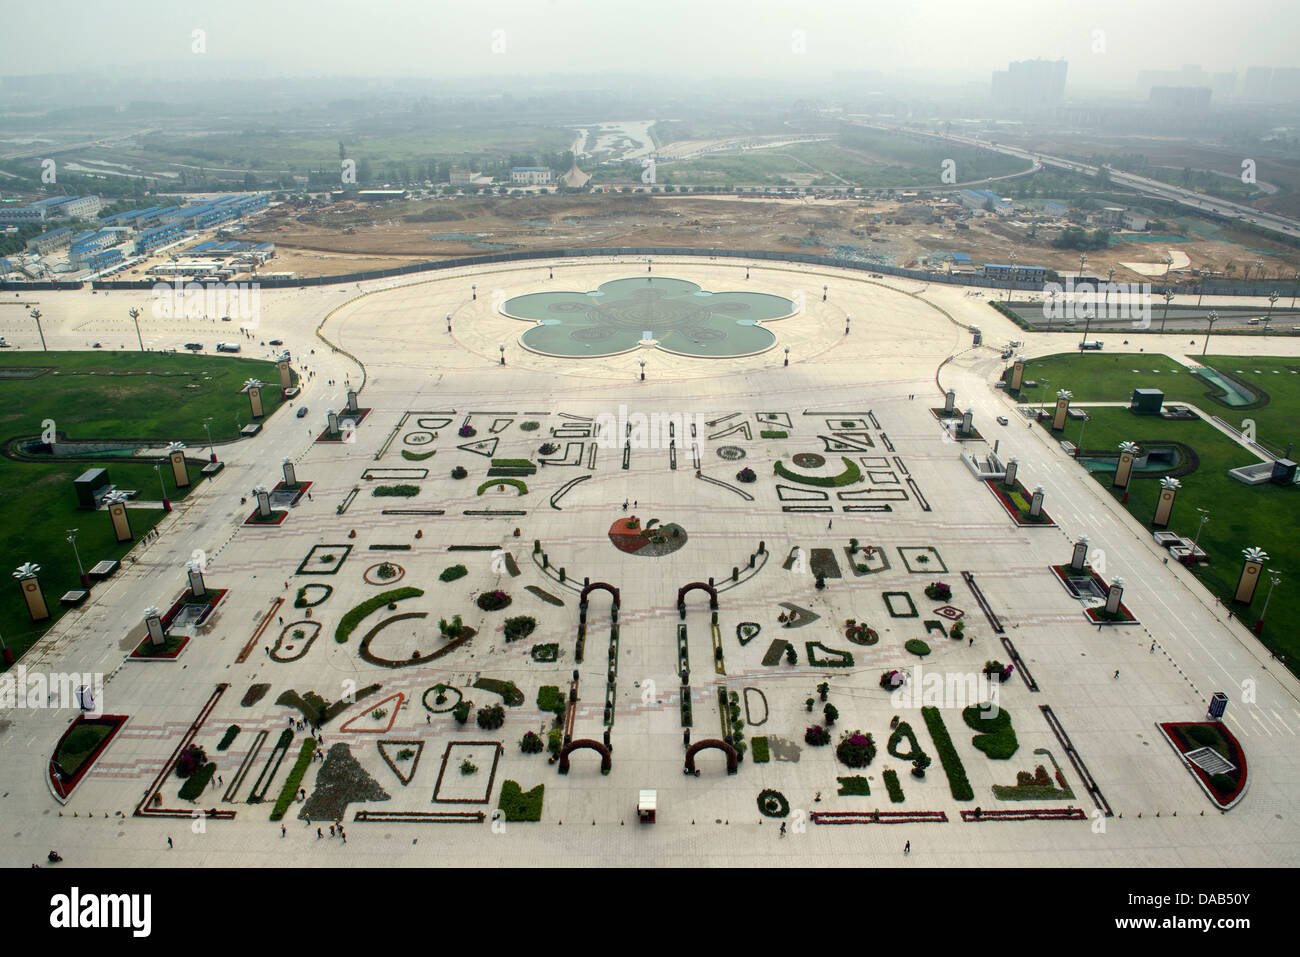 Huge garden square of New Century Global Centre in Chengdu, Sichuan province, China. 07-May-2013 - Stock Image